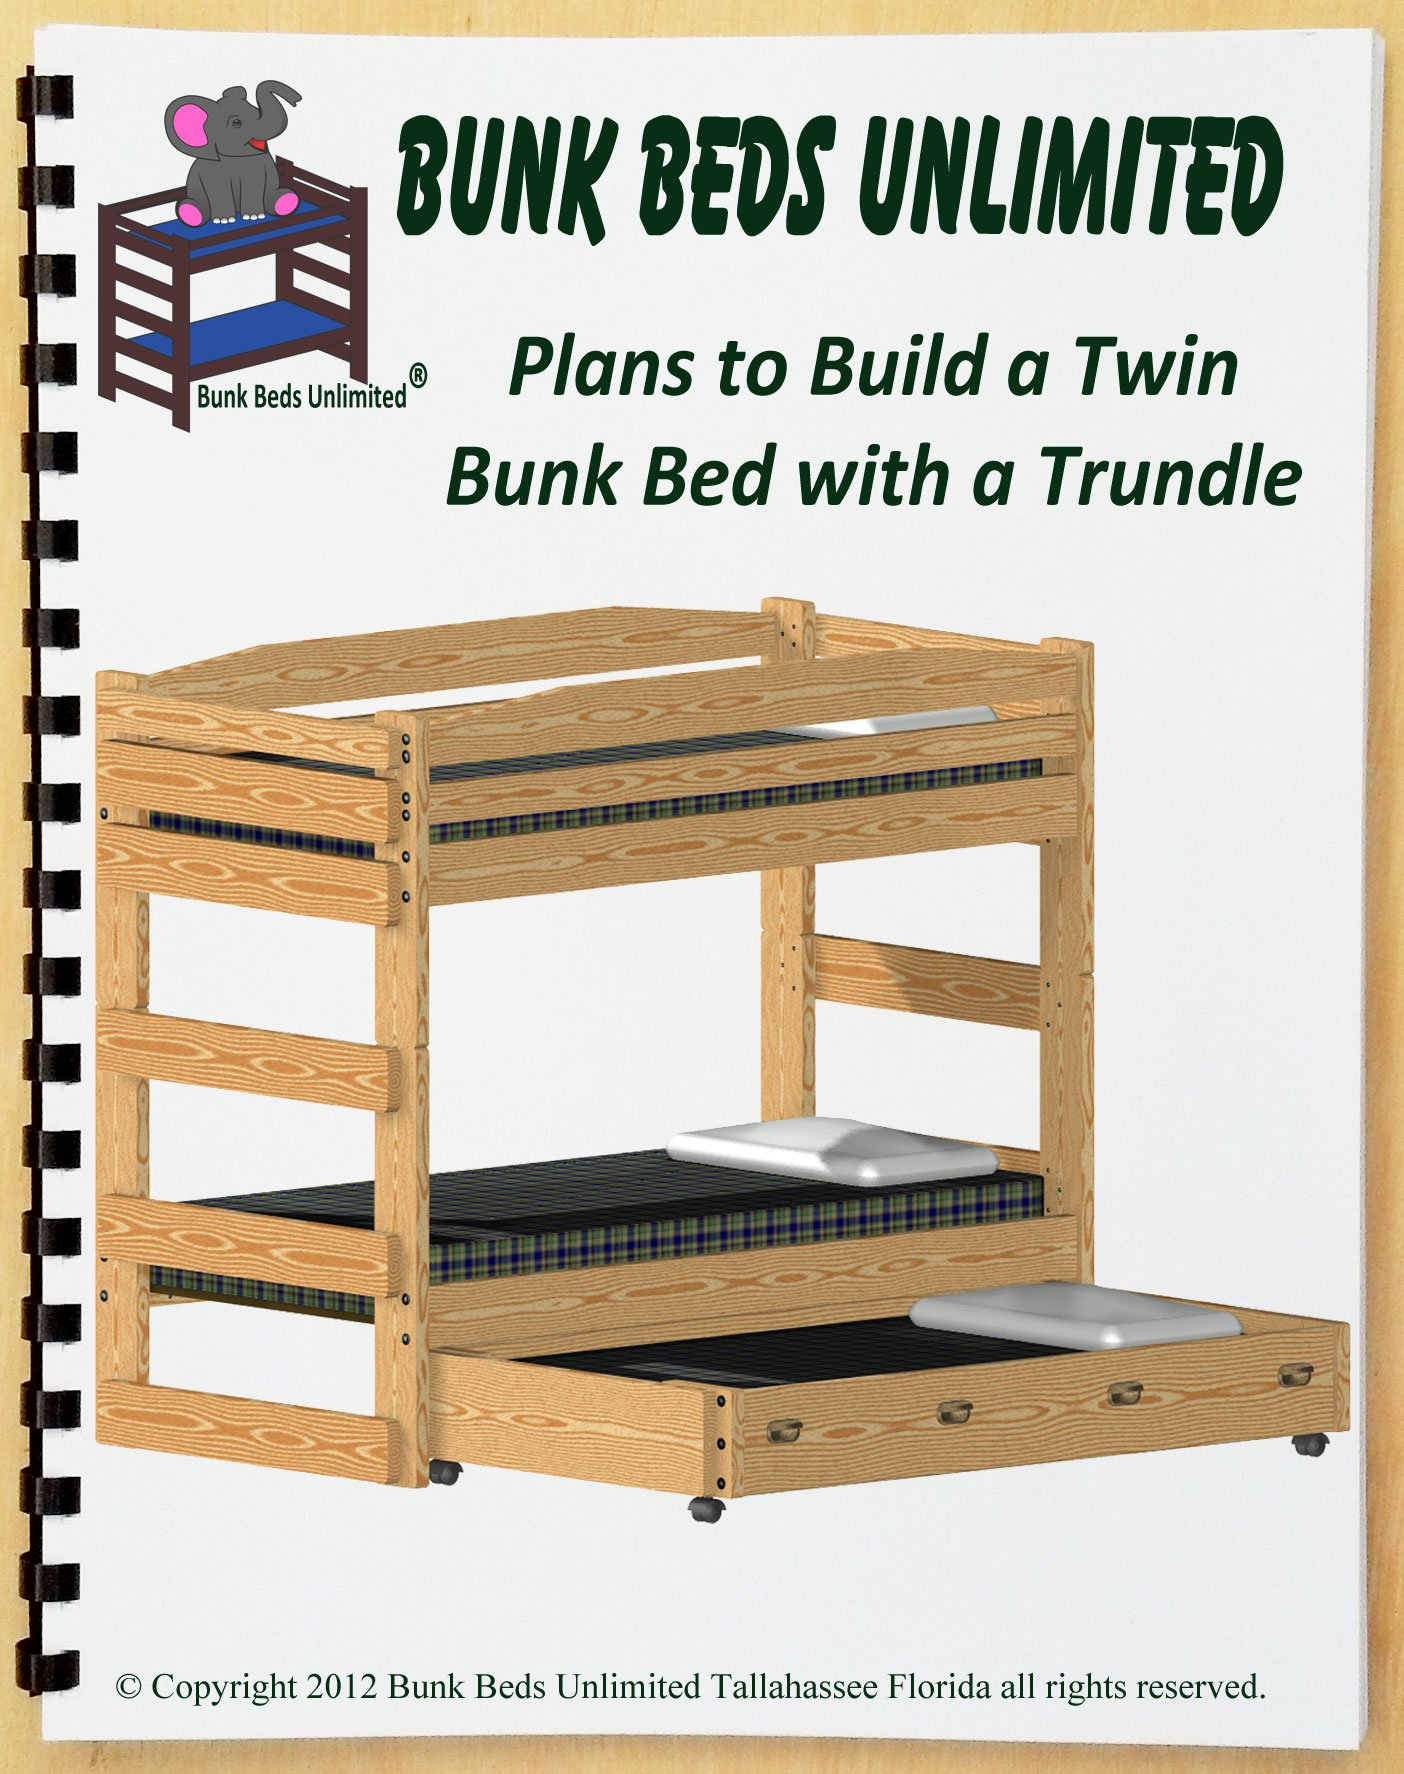 Bunk Bed DIY Woodworking Plan to Build Your Own Stackable Twin Extra-Long (XL Over XL) Bunk with Standard Twin-Size Trundle That Sleeps Three by Bunk Beds Unlimited